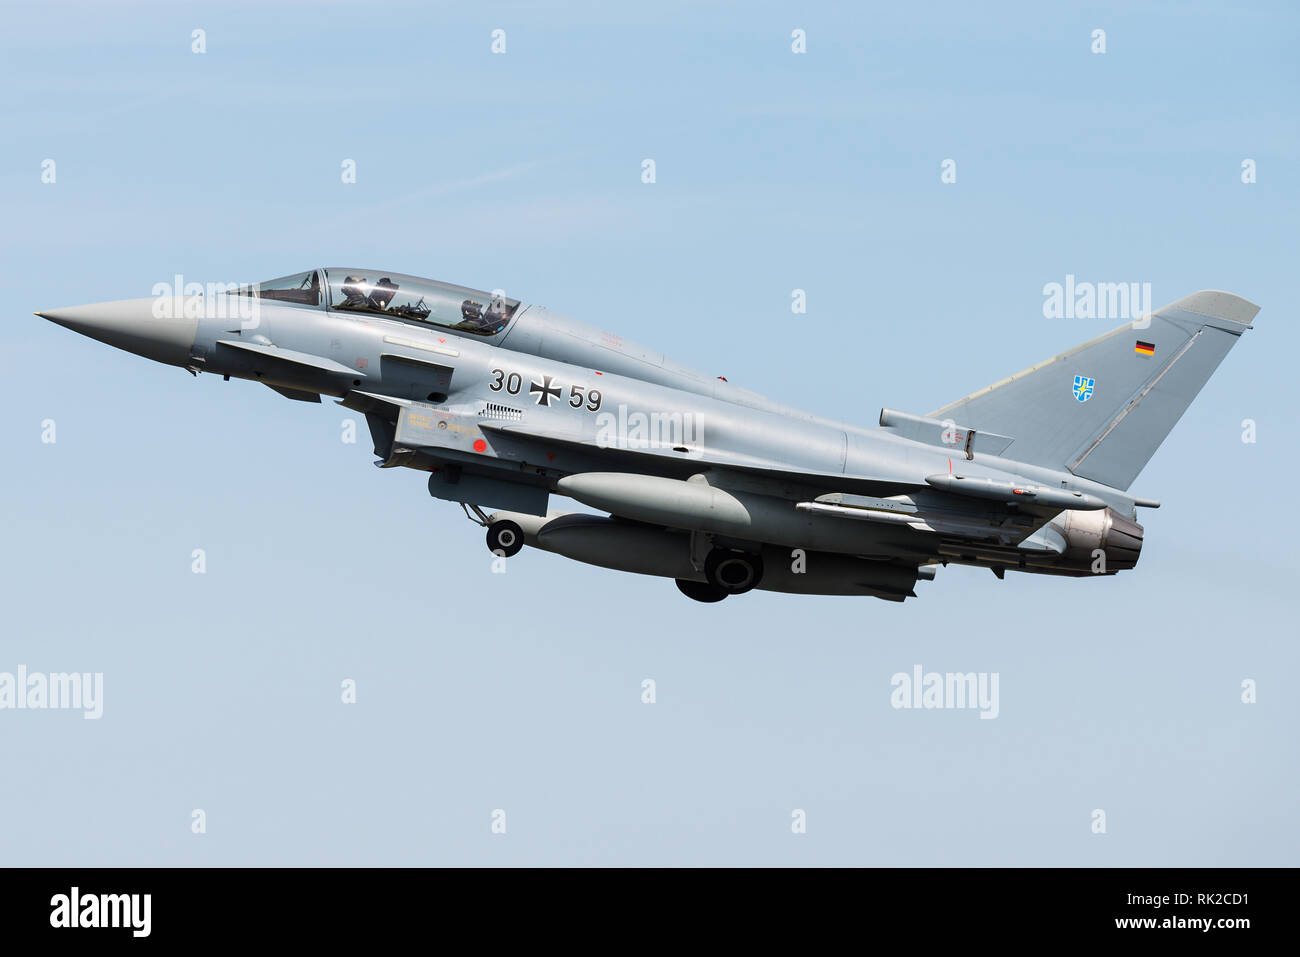 A Eurofighter Typhoon multirole fighter jet of the German Air Force. Stock Photo